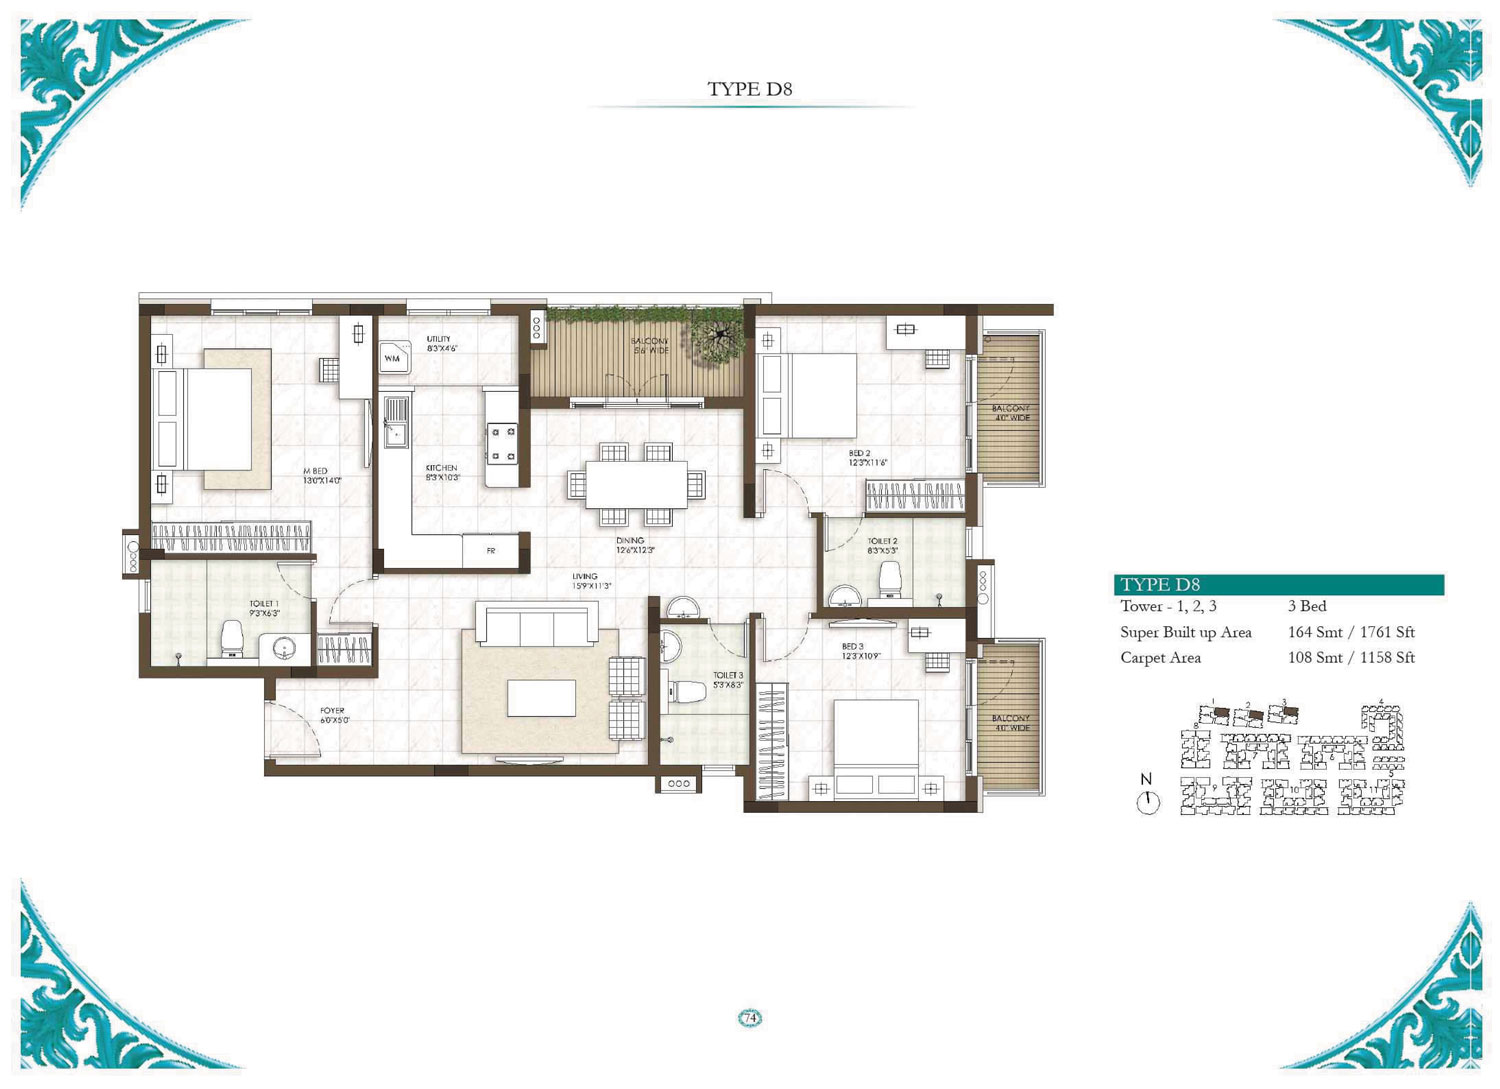 Type D8 - 3 Bed - 1761 Sq Ft